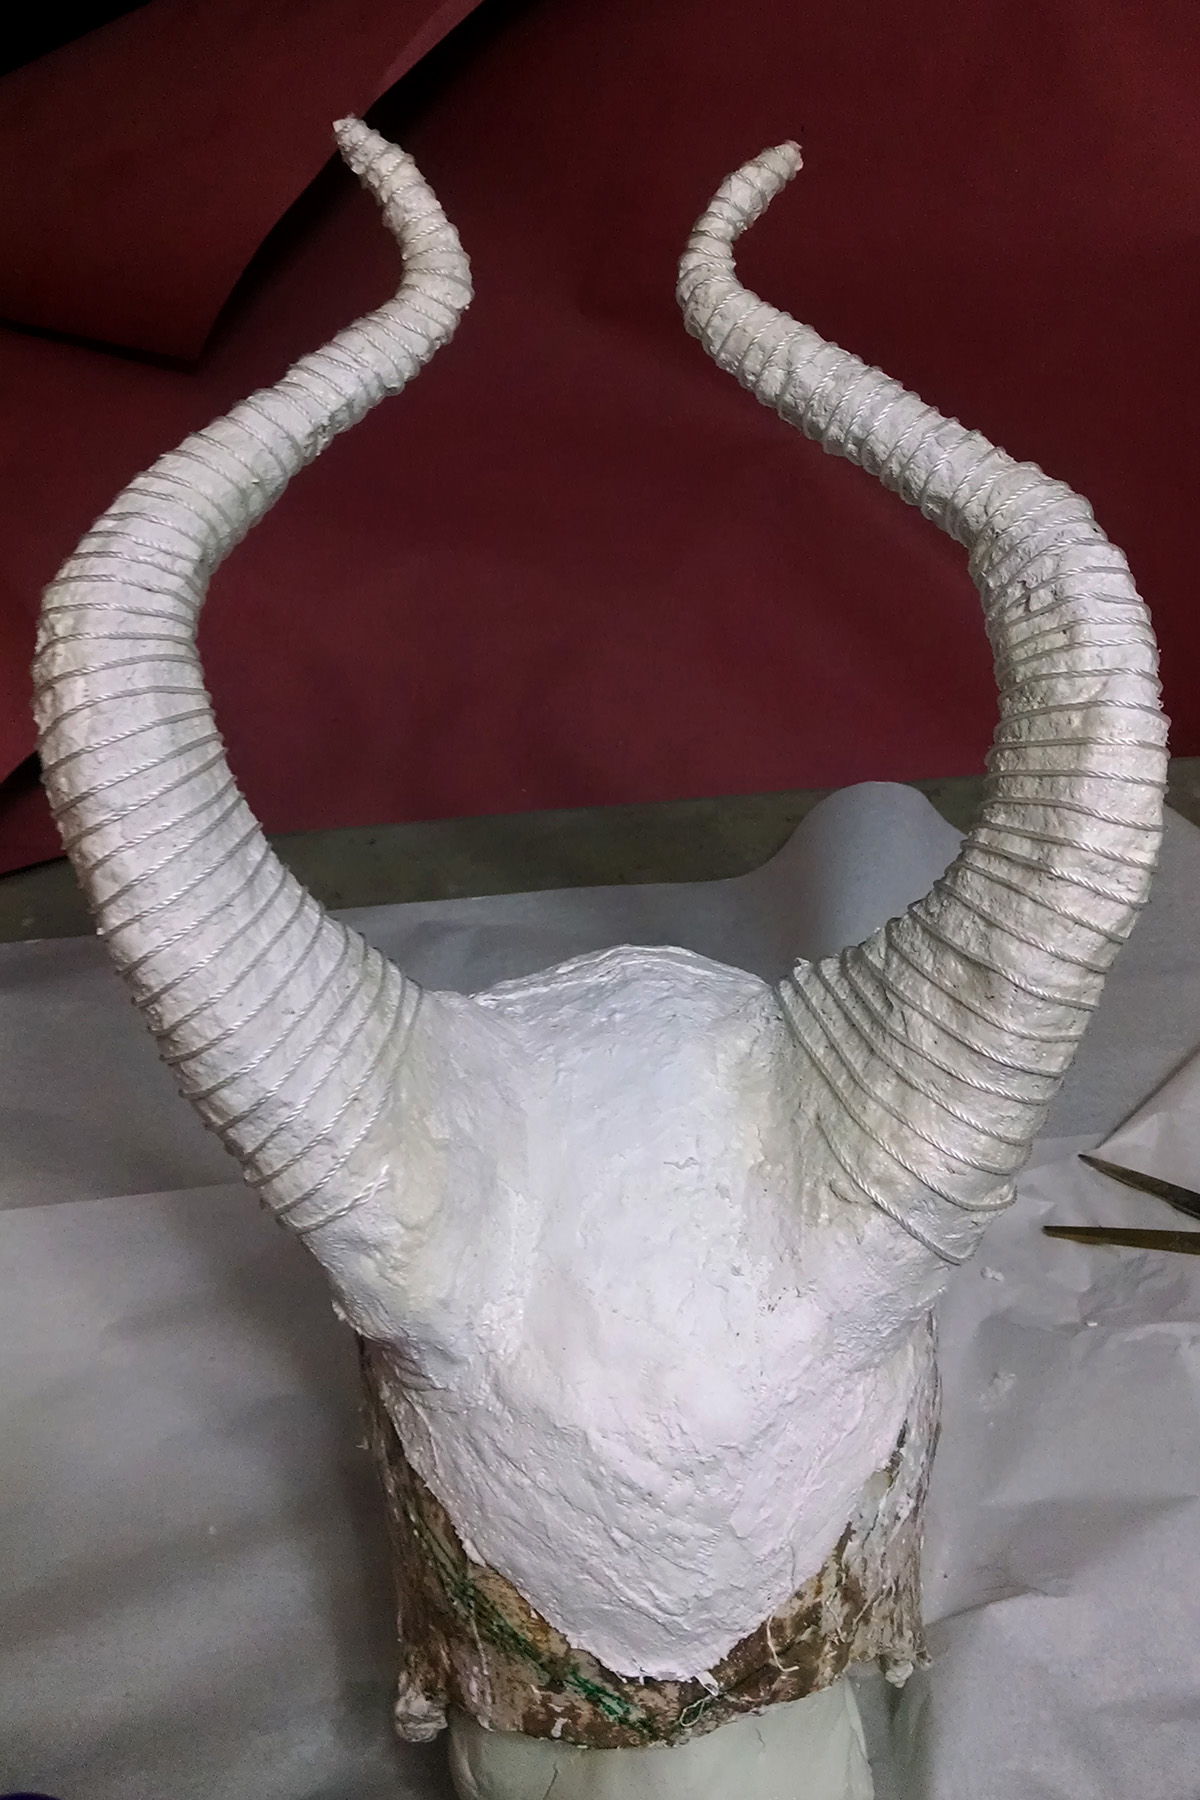 Twine has been wrapped around the horns to give them a ridged appearance.